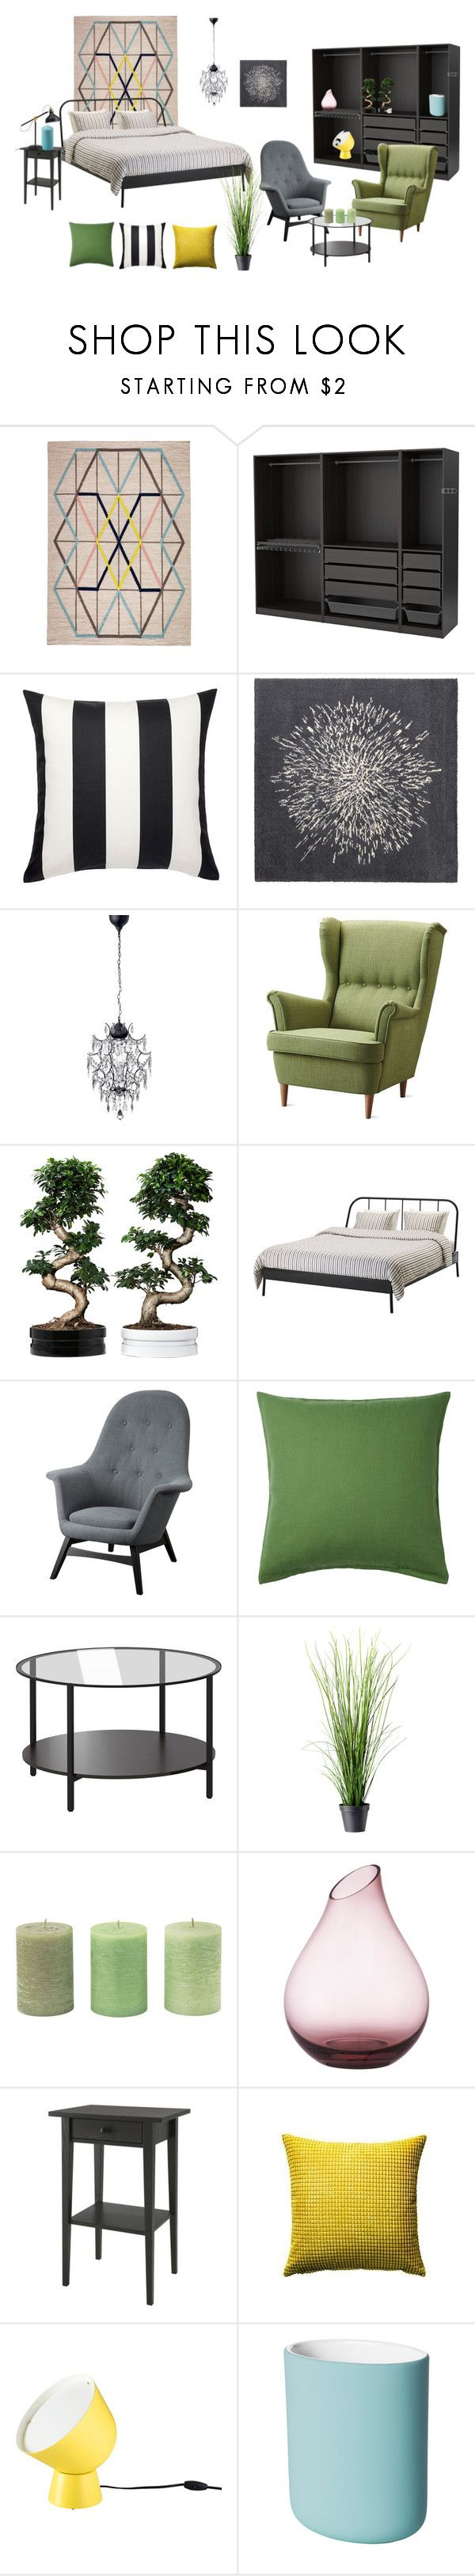 """bedroom"" by daniel-doyle on Polyvore featuring interior, interiors, interior design, home, home decor, interior decorating and bedroom"